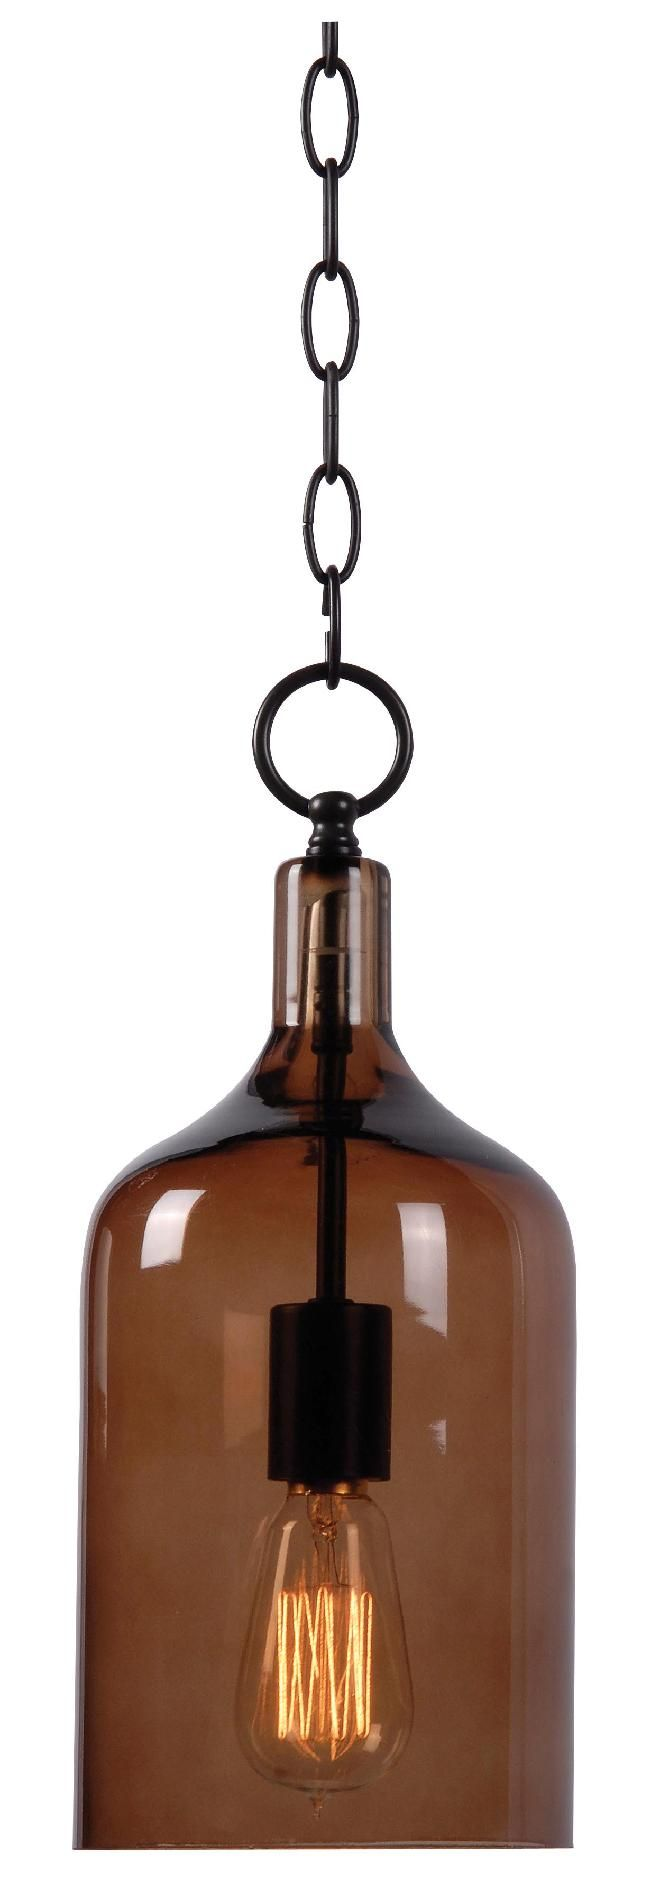 antique bulb pendant light with a wine bottle covering